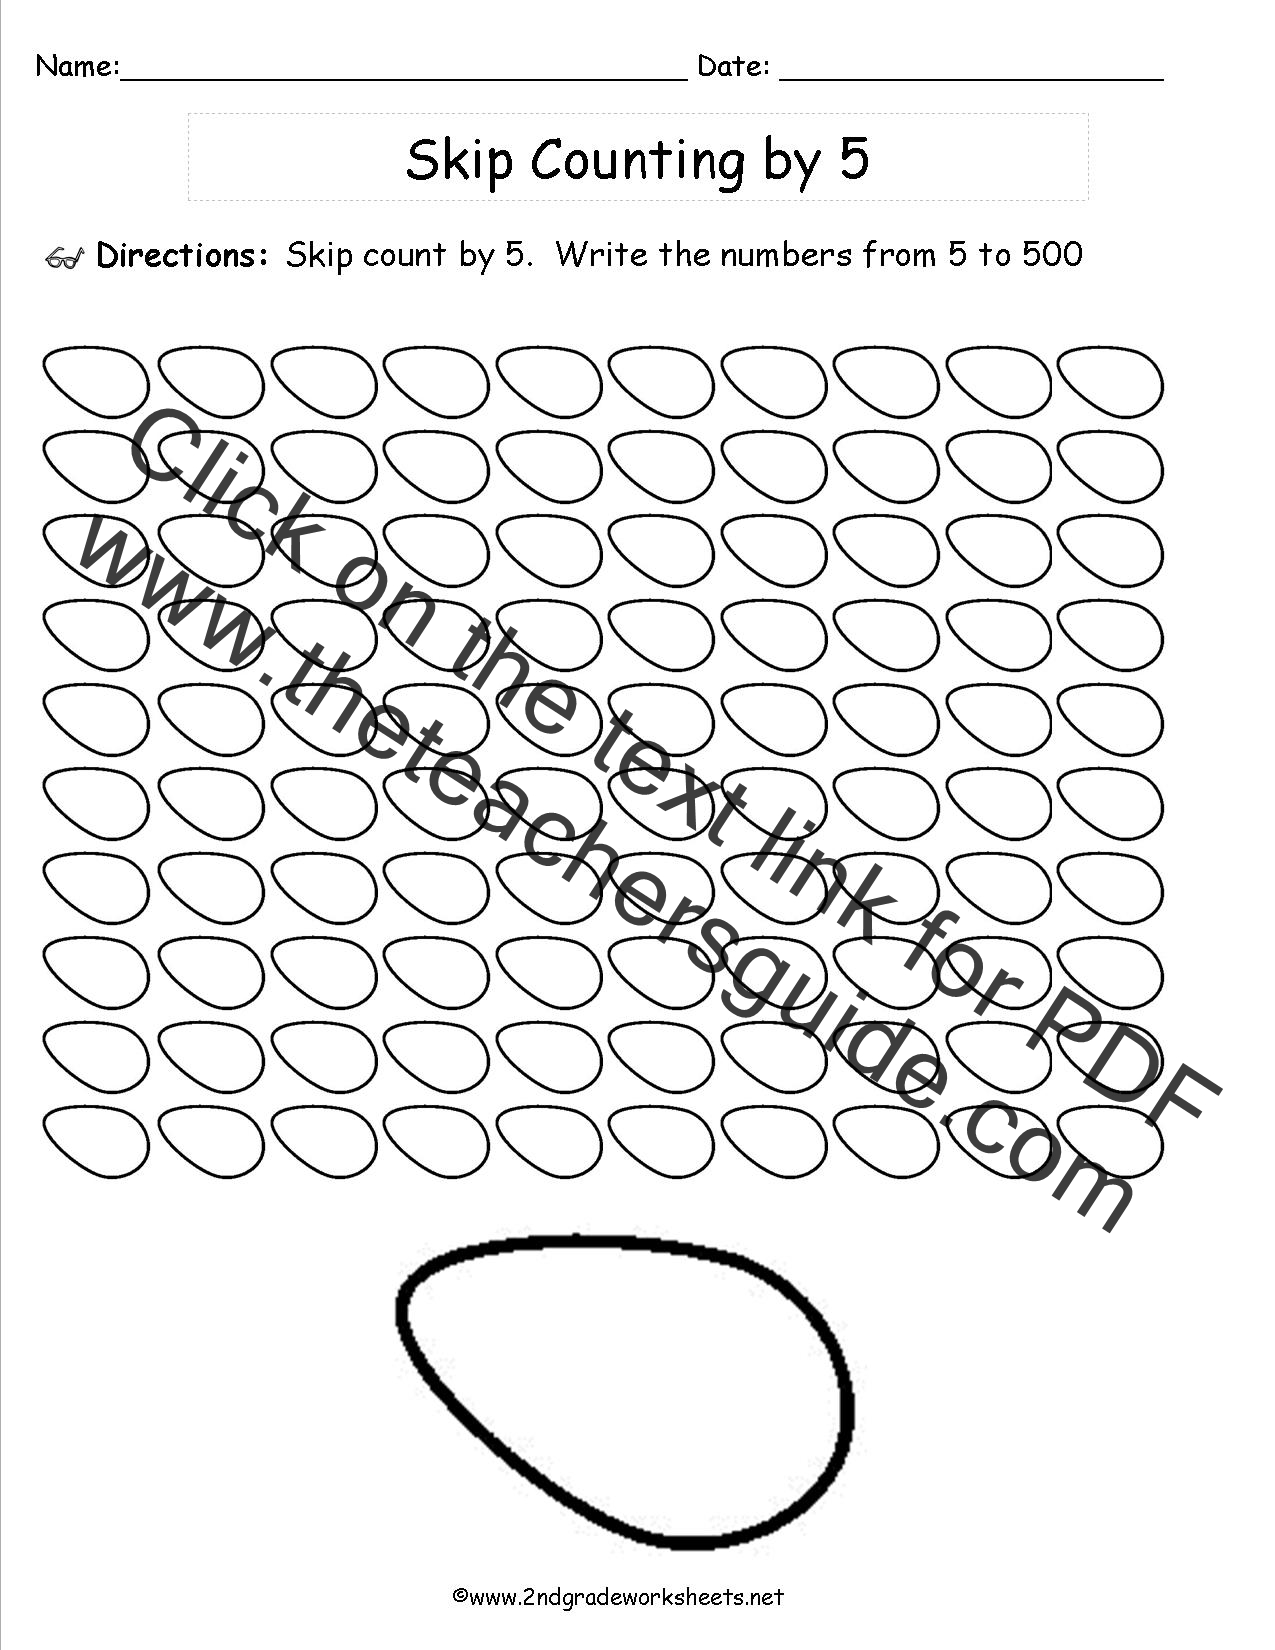 worksheet Free Easter Worksheets easter worksheets and printouts egg skip count by 5 worksheet